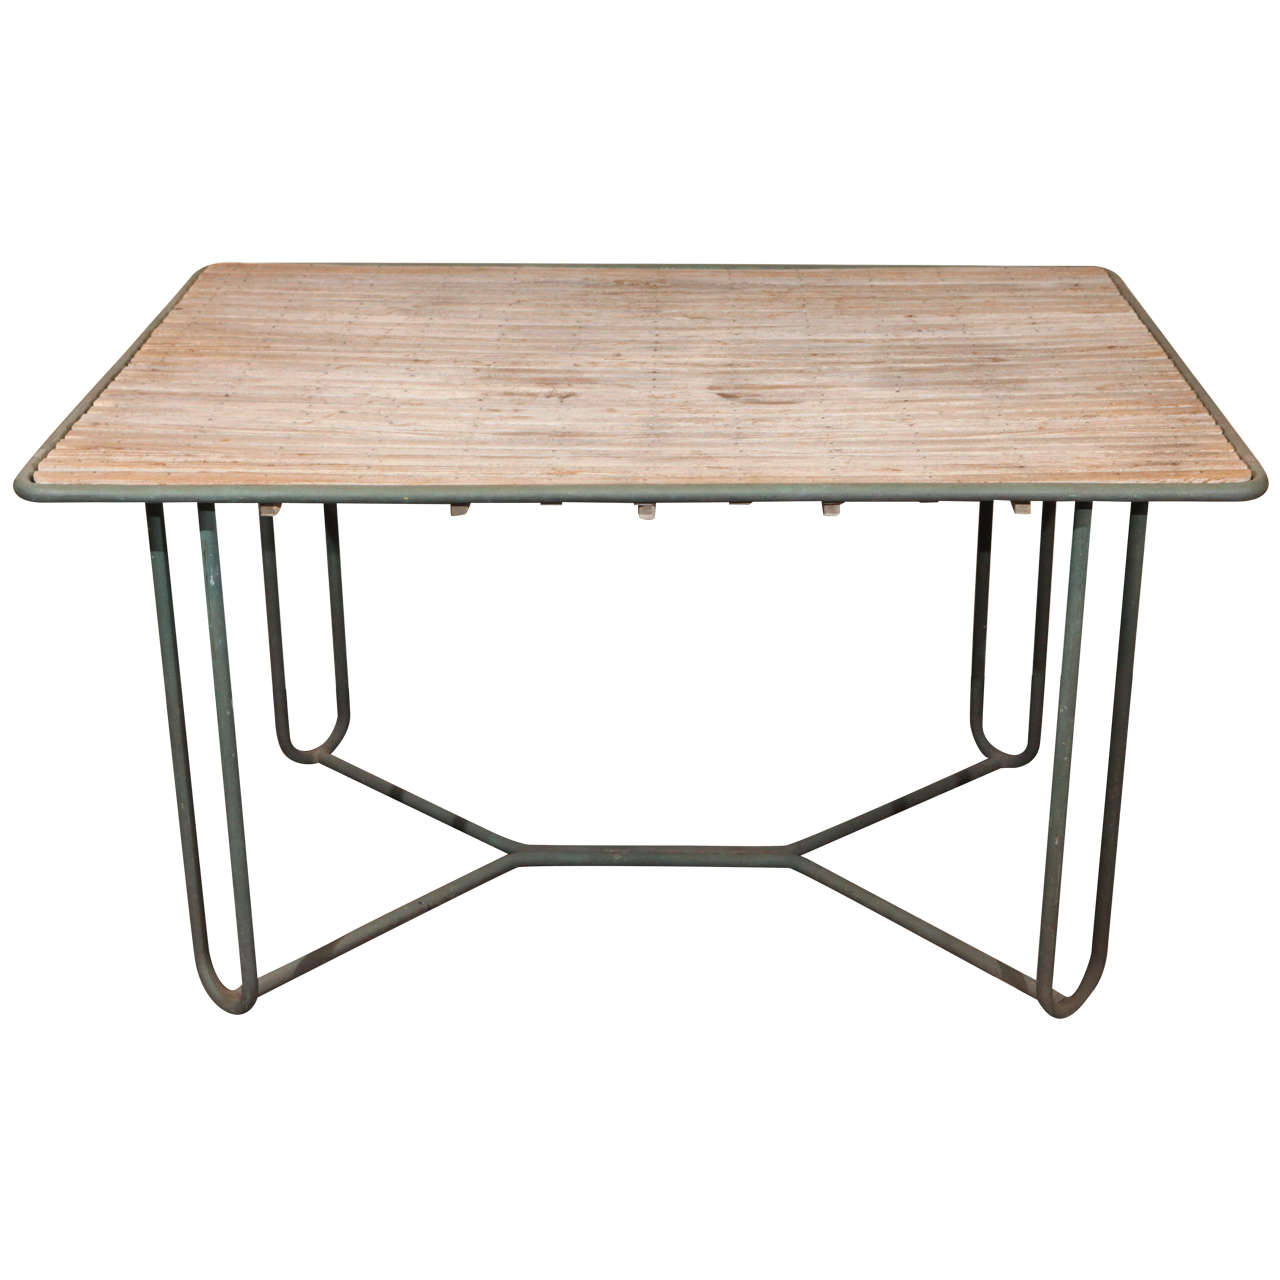 Walter Lamb table, 1950s, offered by JF Chen